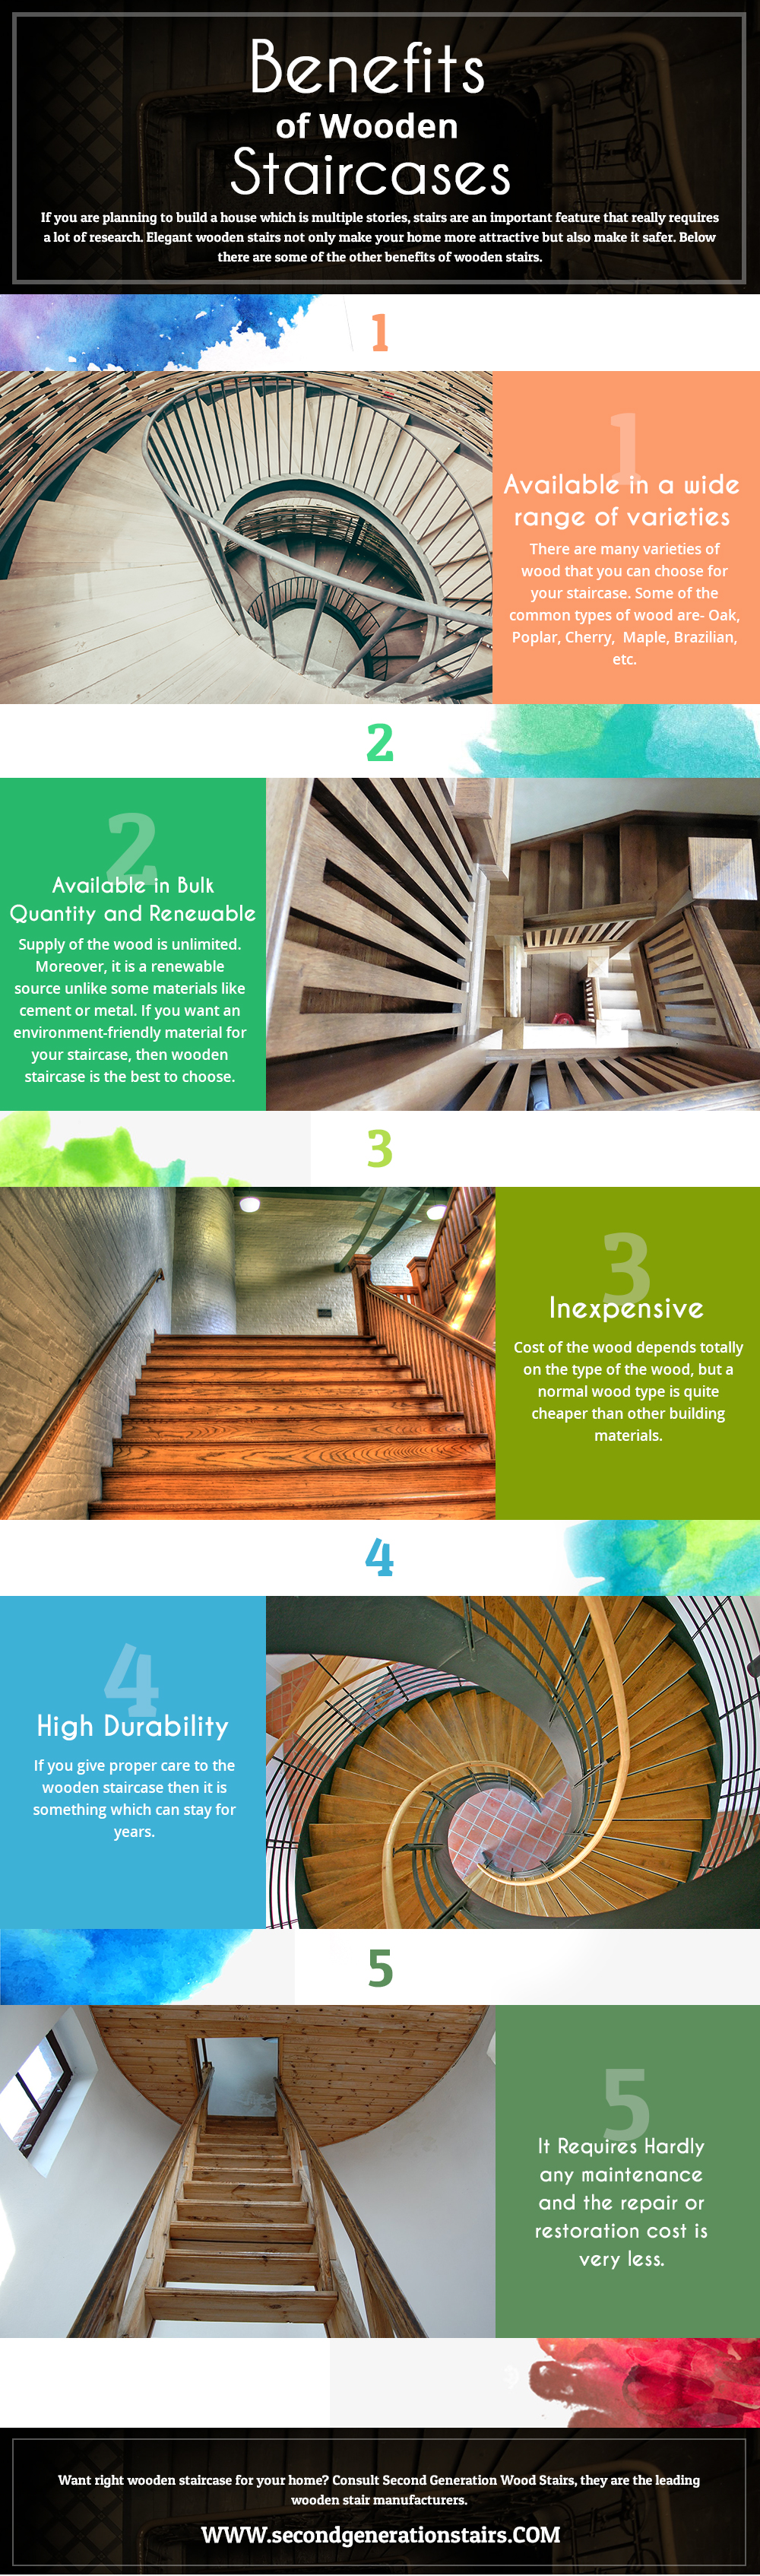 Best High Durability Of Wooden Stairs Made It Special For Home 400 x 300